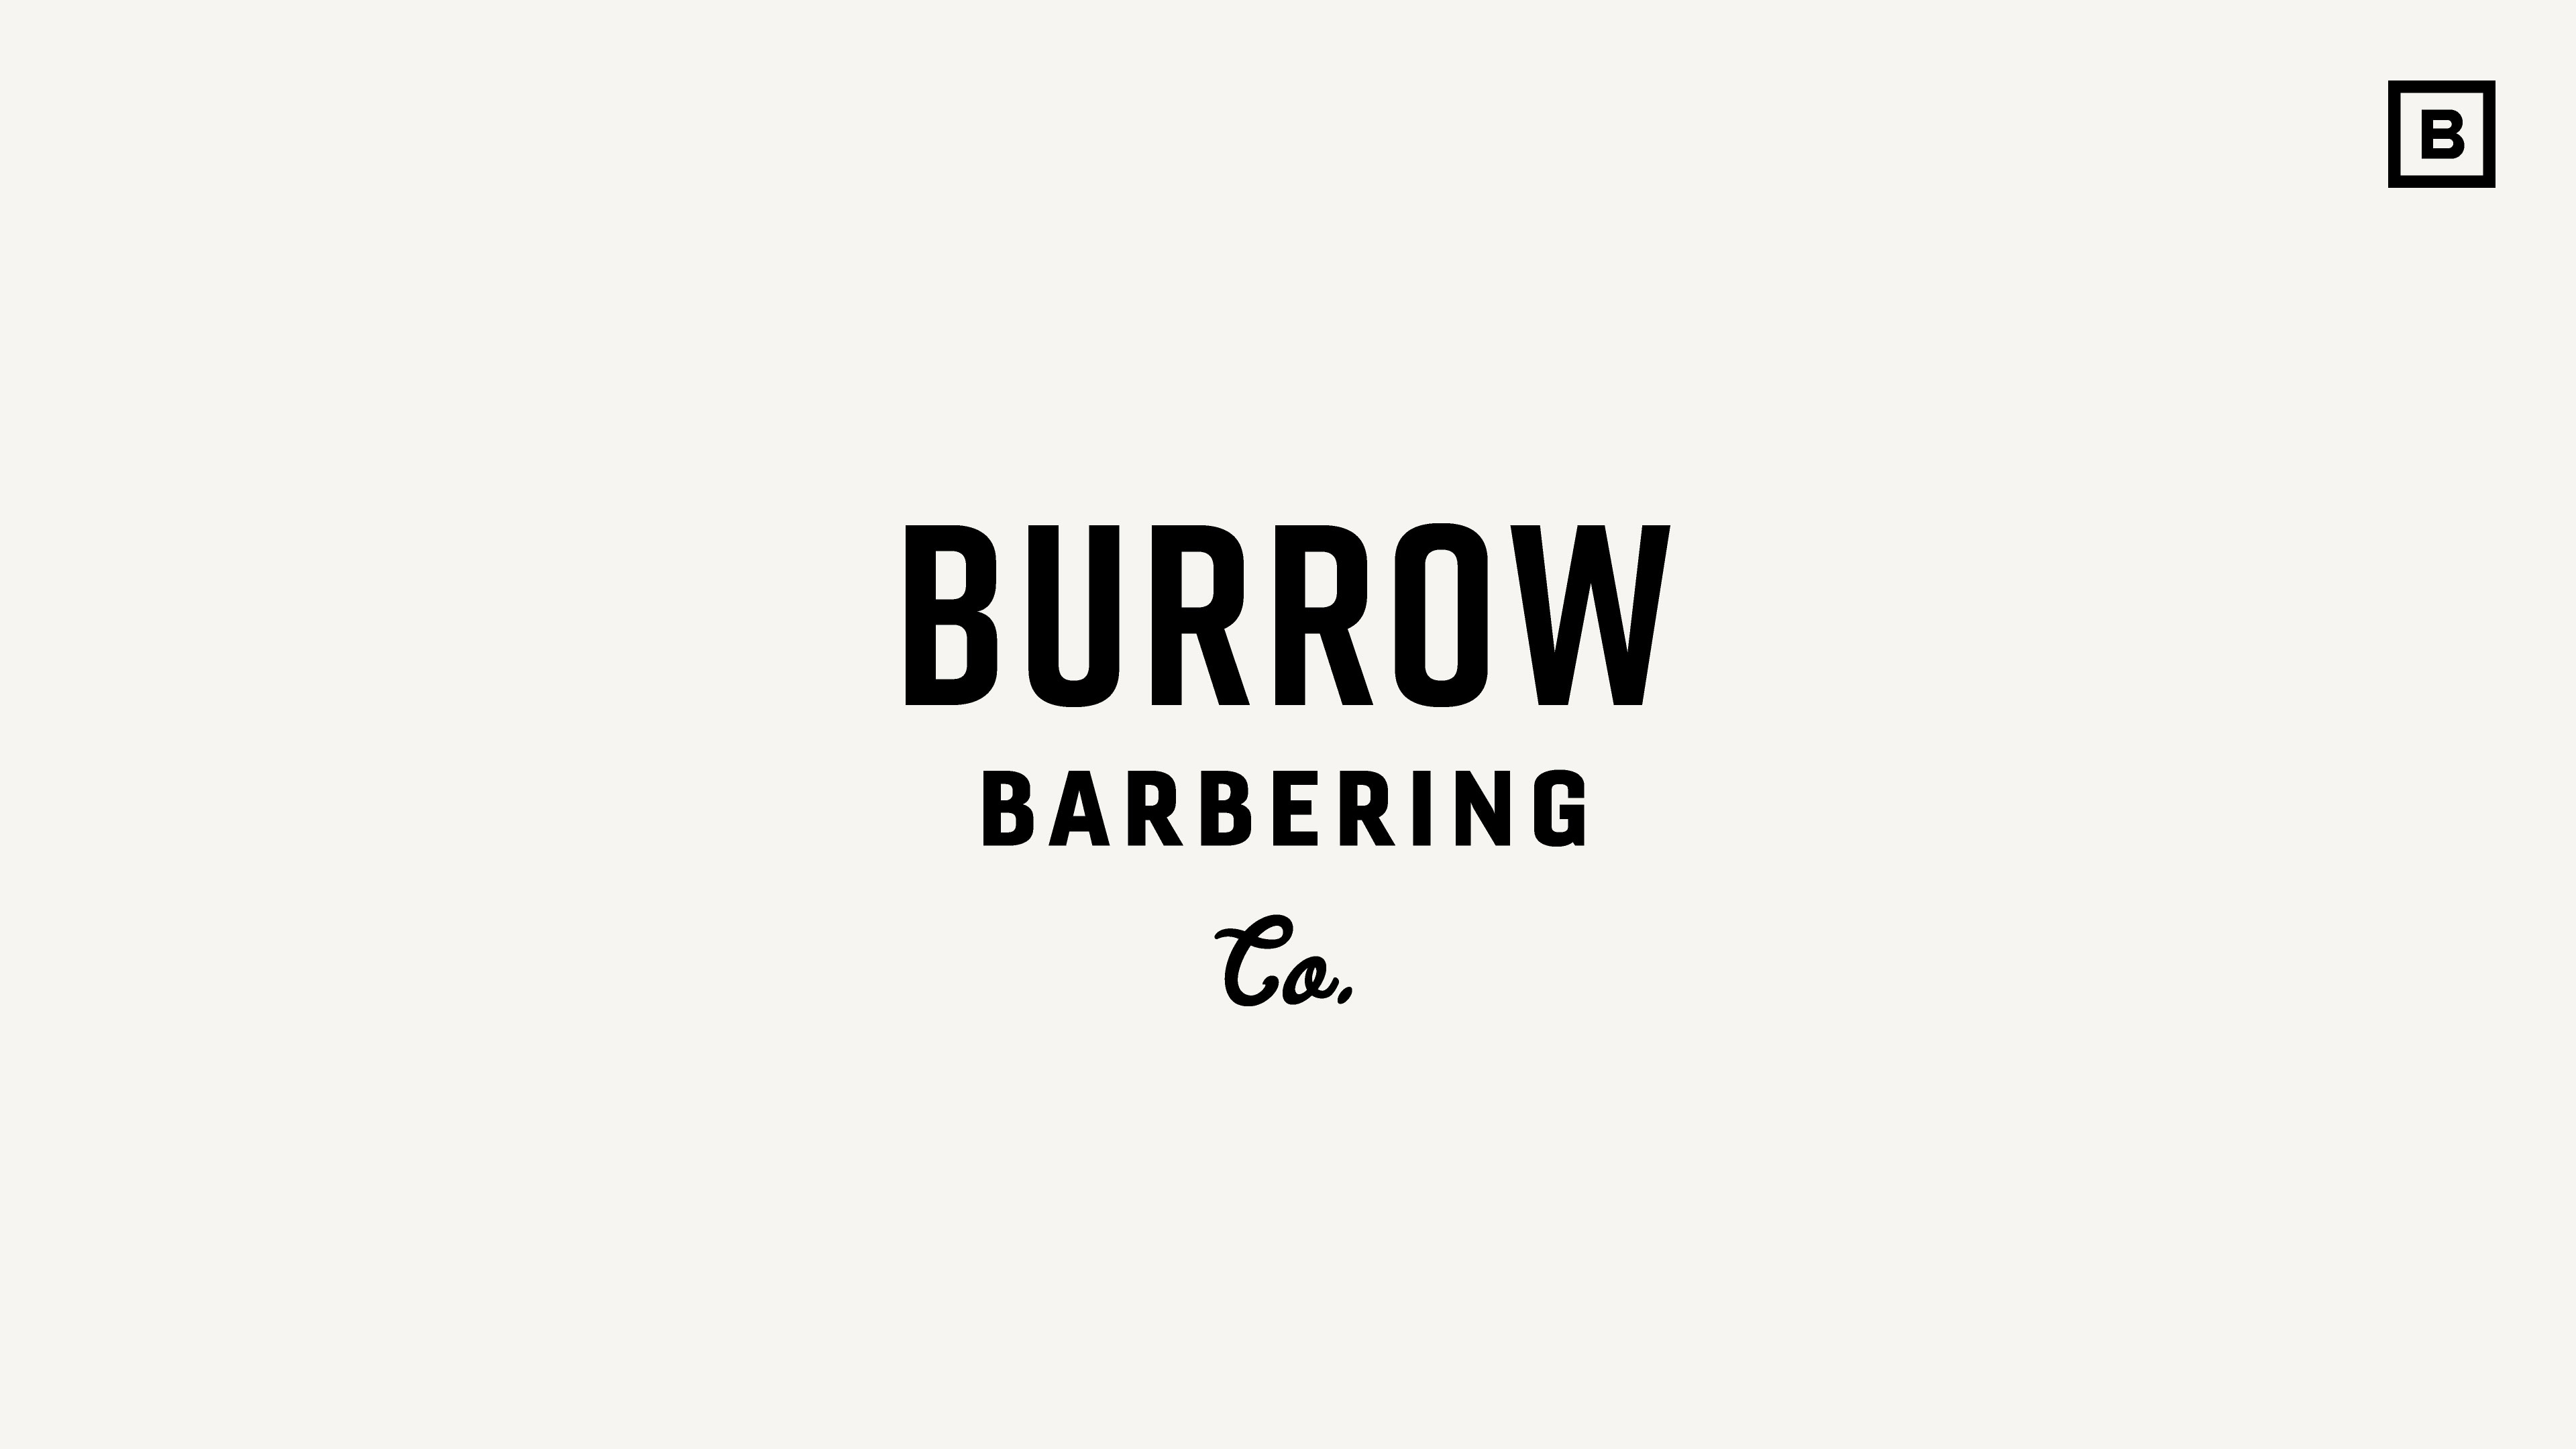 burrow-barbering-co-inthewild-a